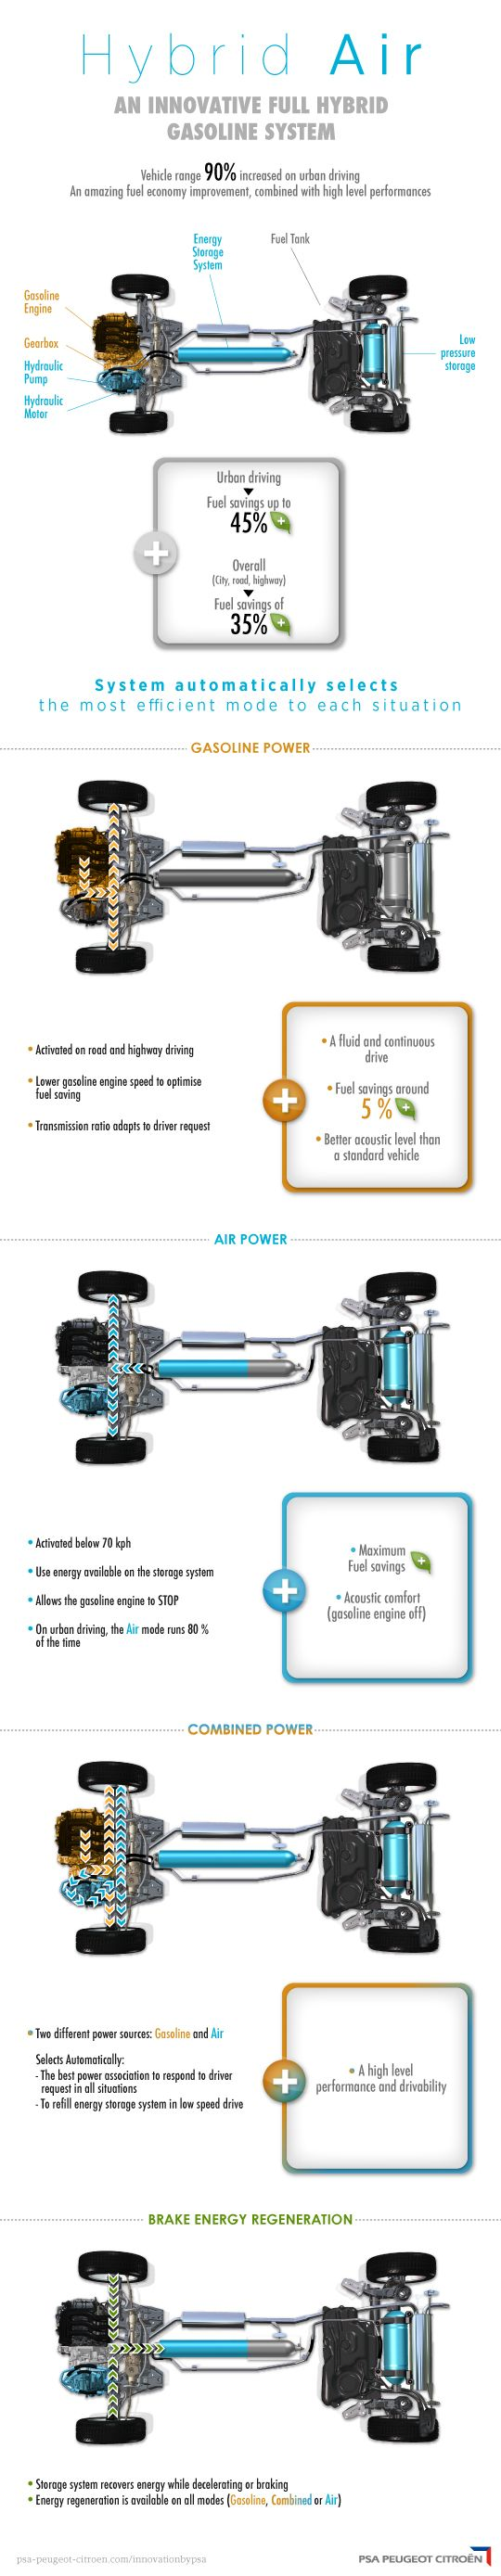 Hybrid air, full hybrid compressed air car engine